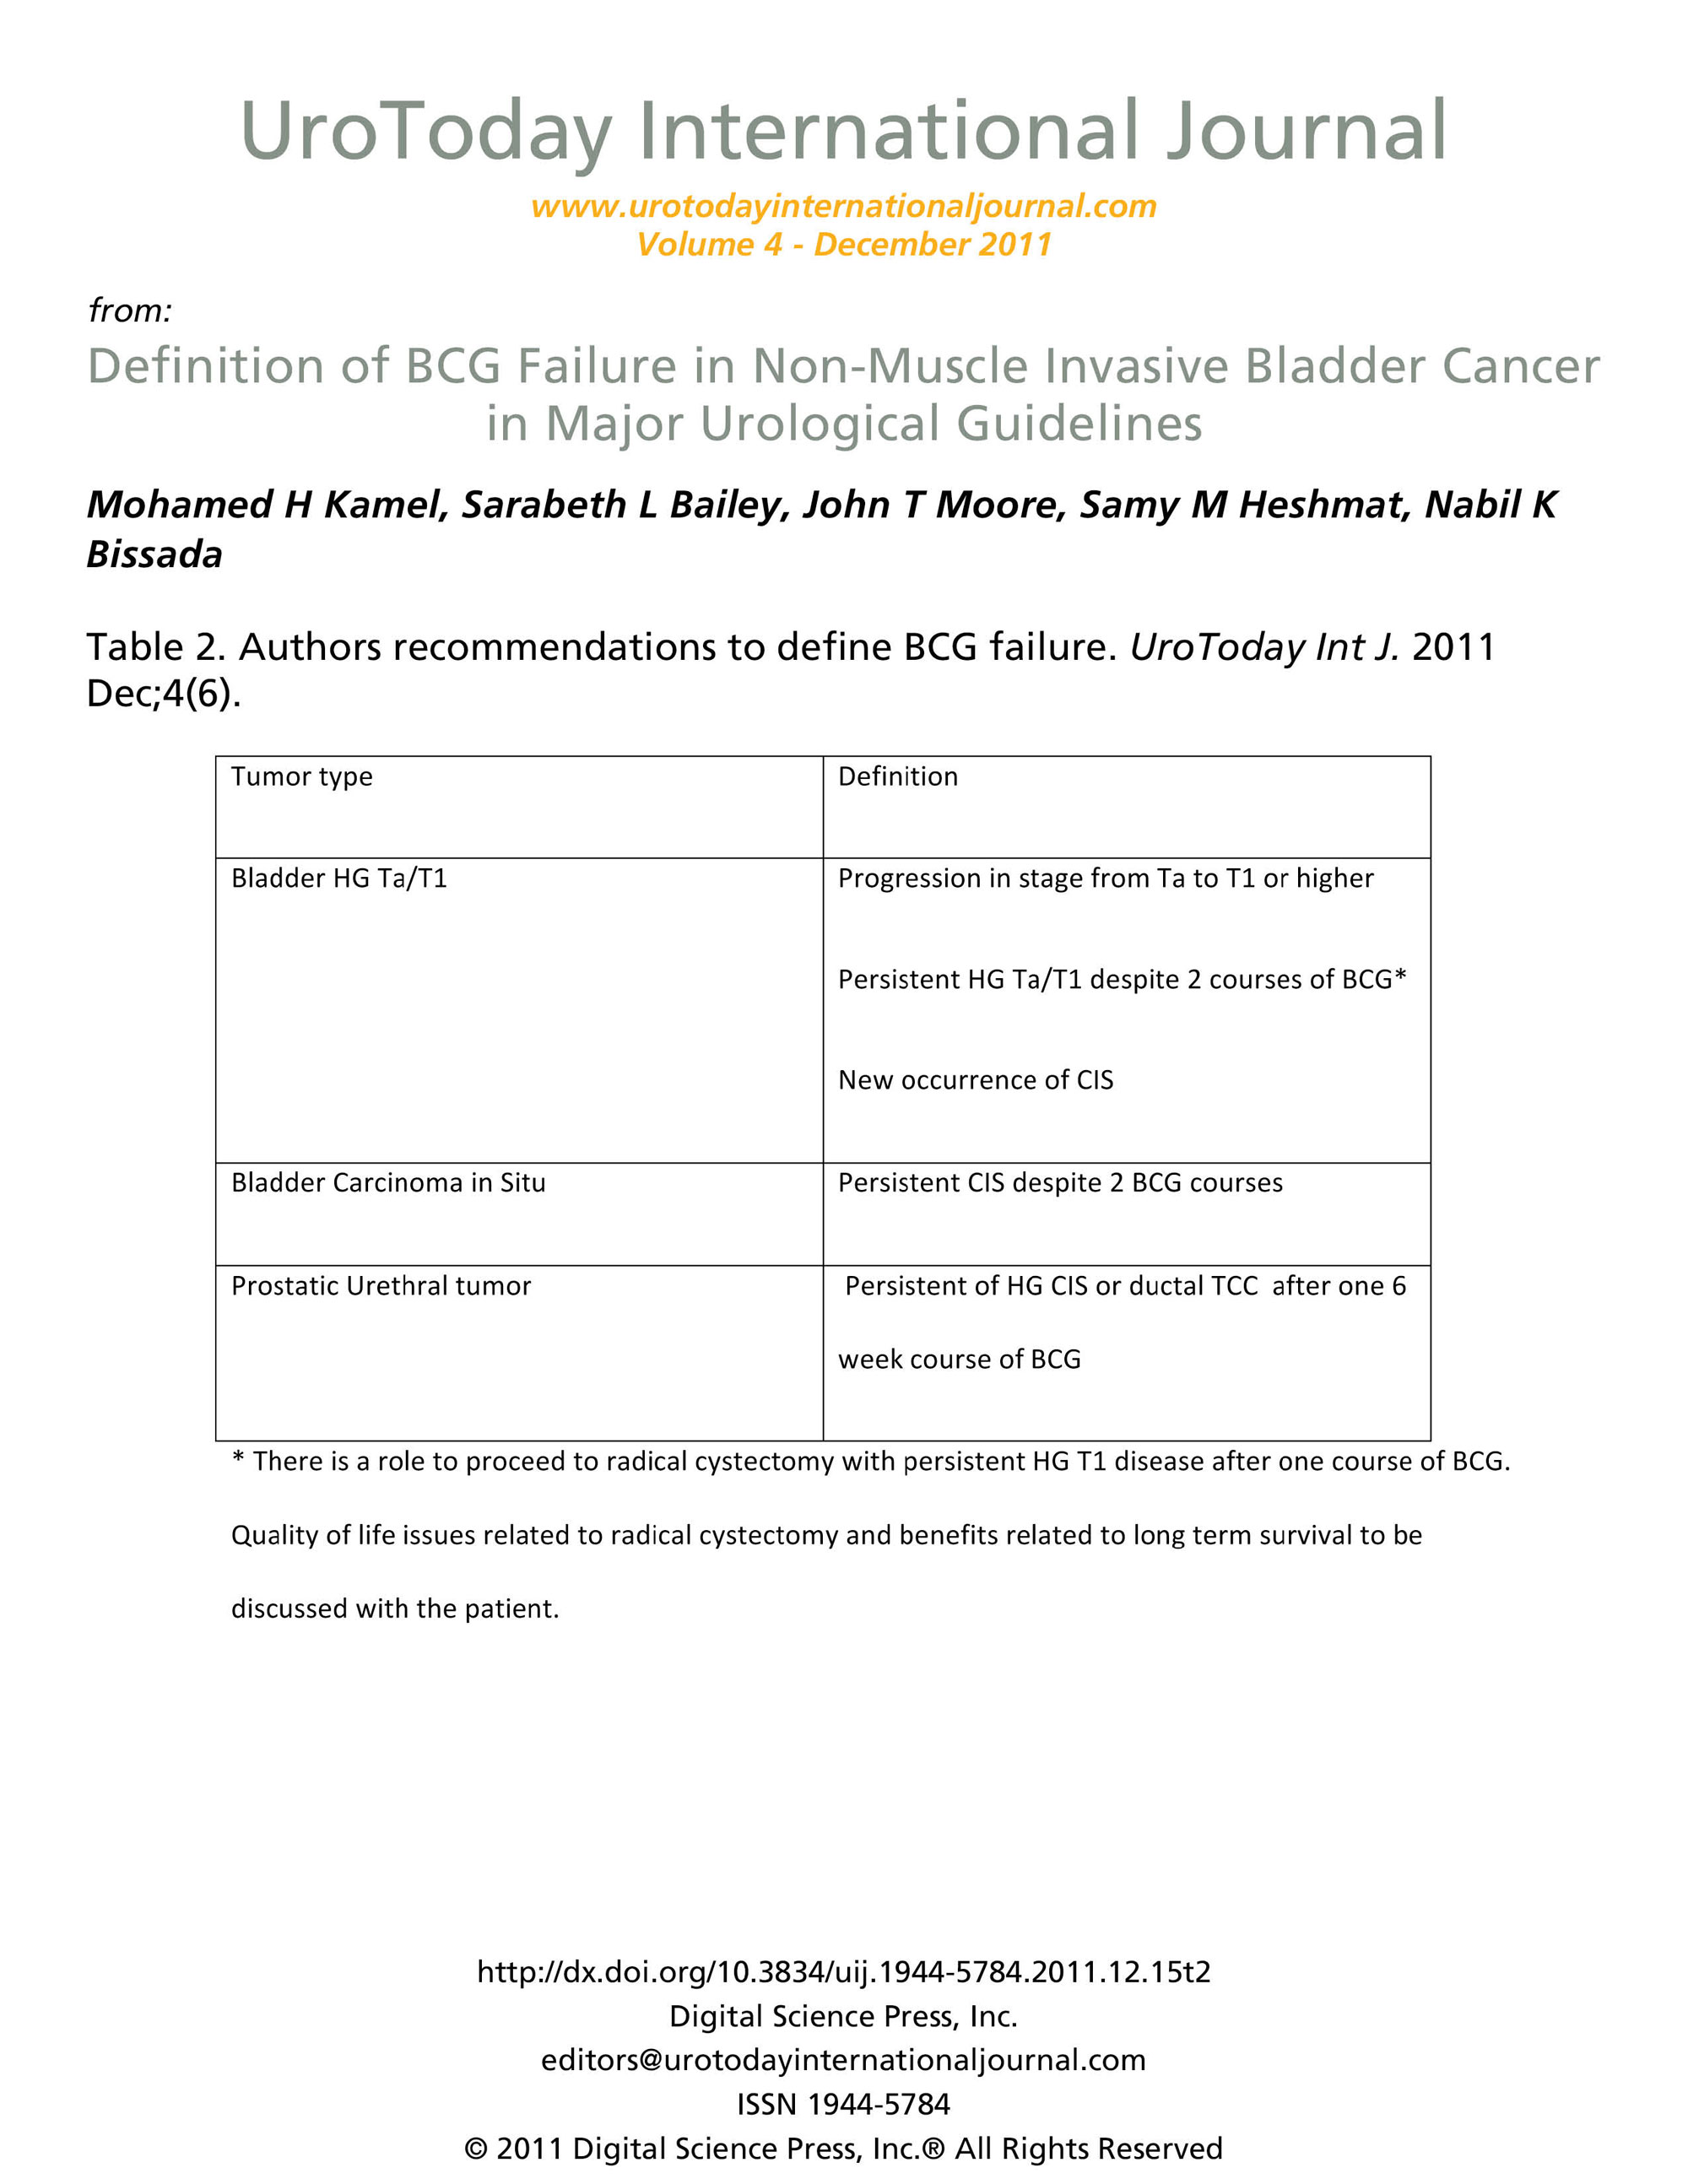 Definition of BCG Failure in Non-Muscle Invasive Bladder Cancer in